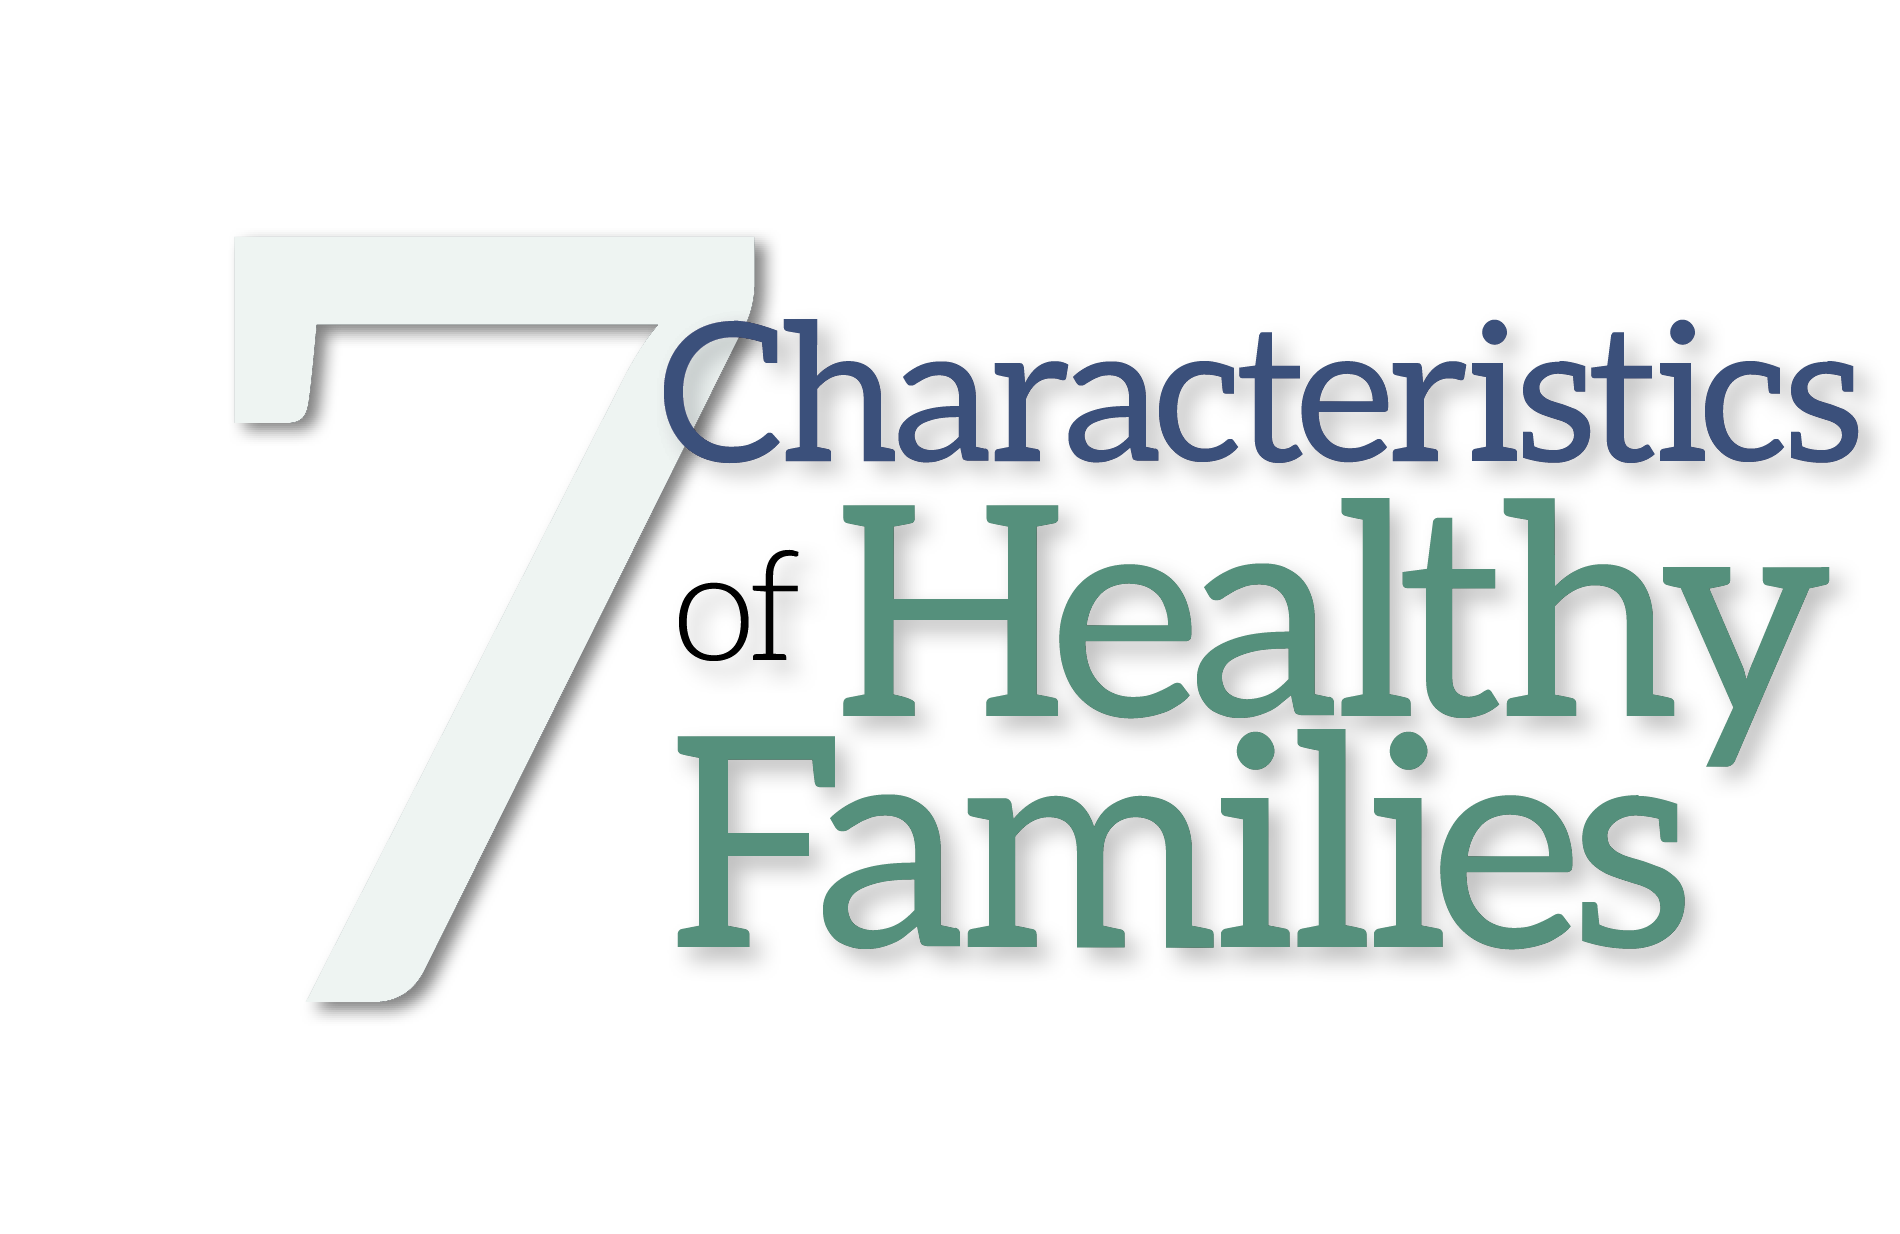 7 Characteristics of Healthy Families - Life, Hope & Truth